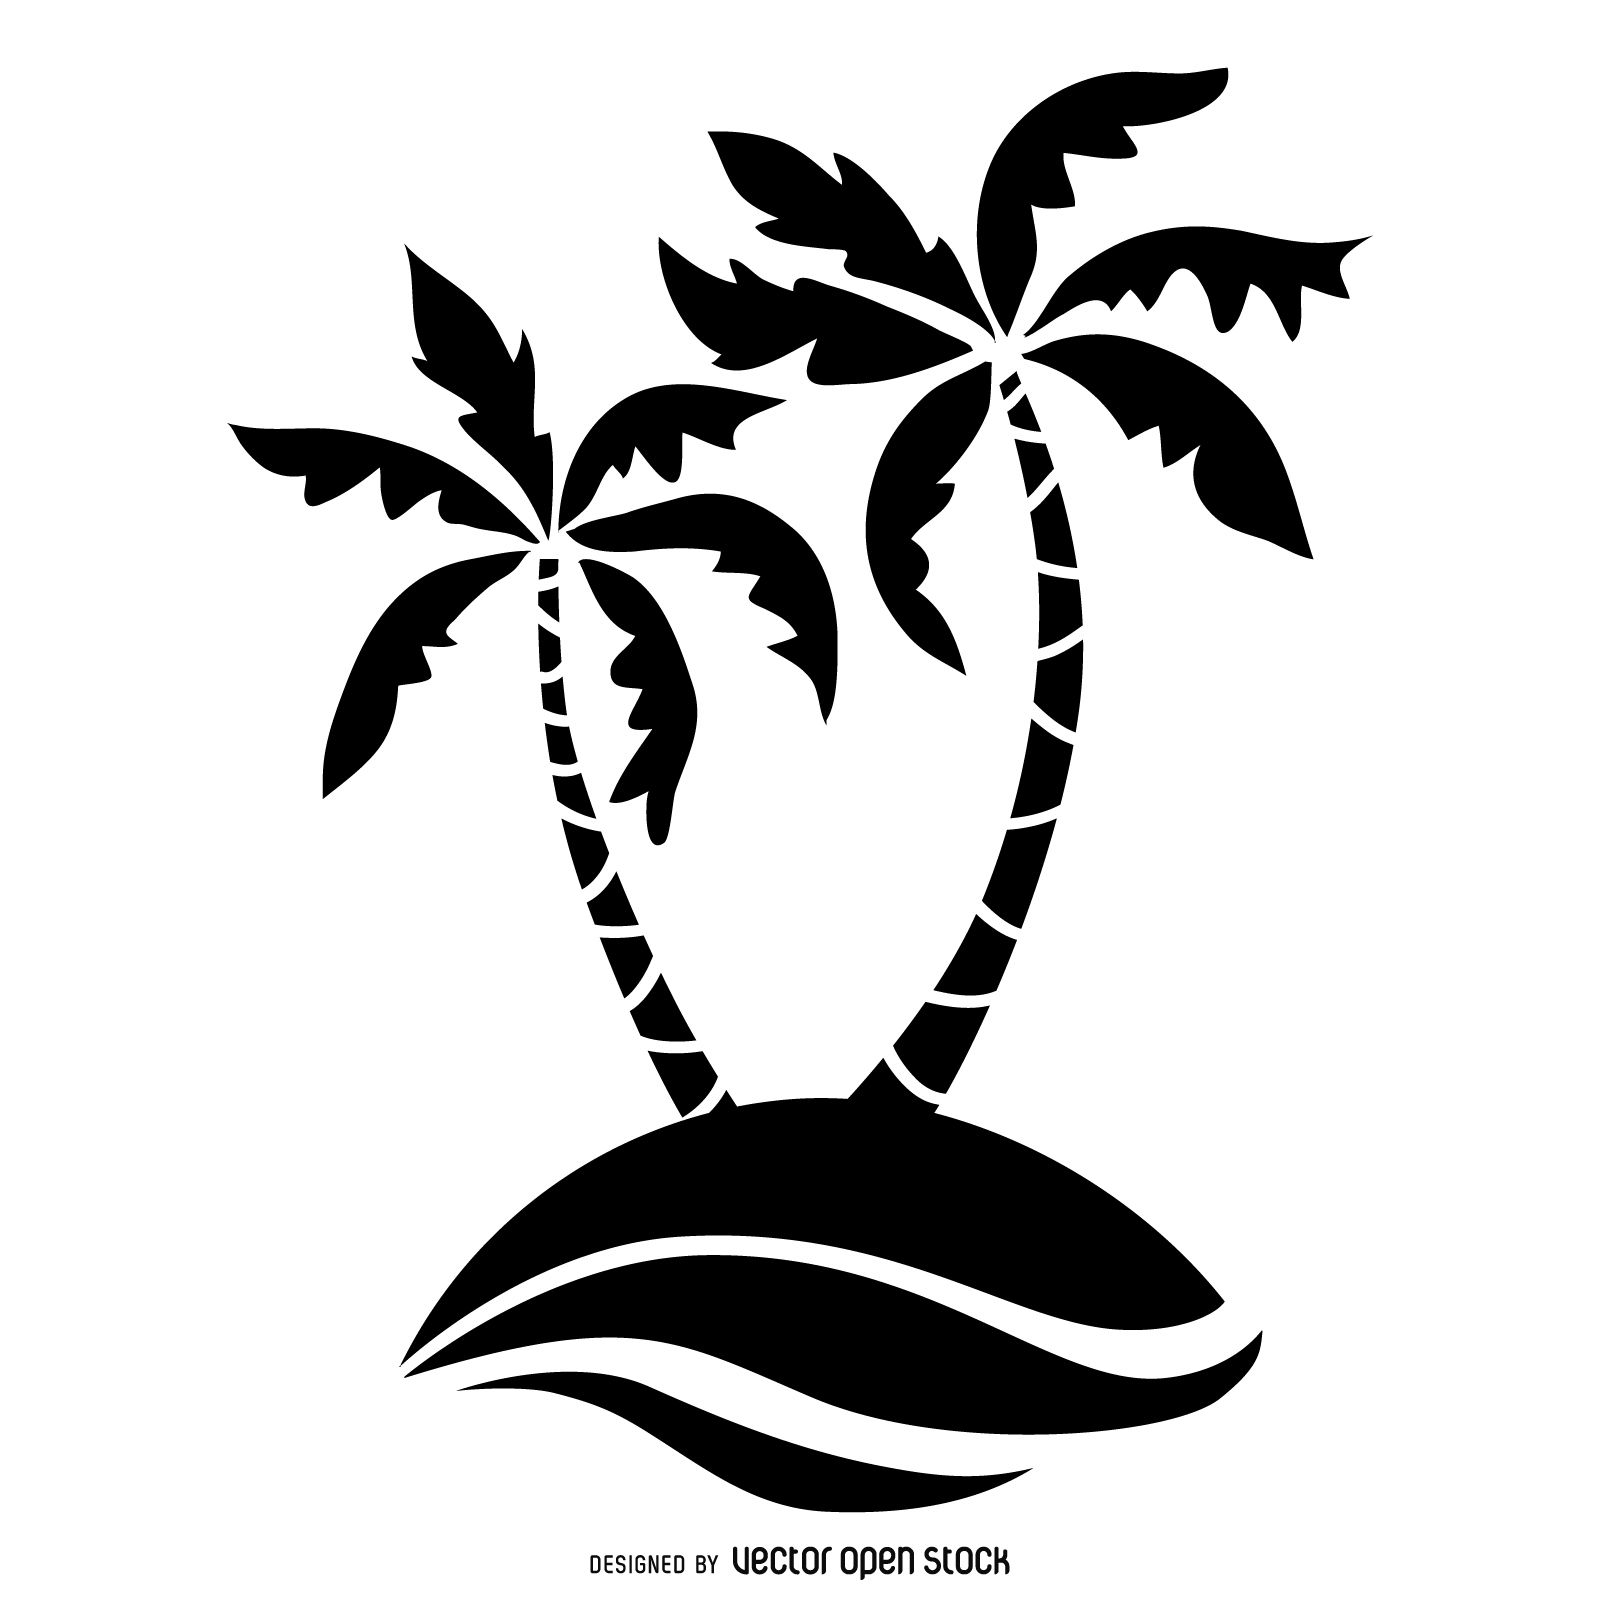 Palm Tree Silhouette Illustration Download Large Image